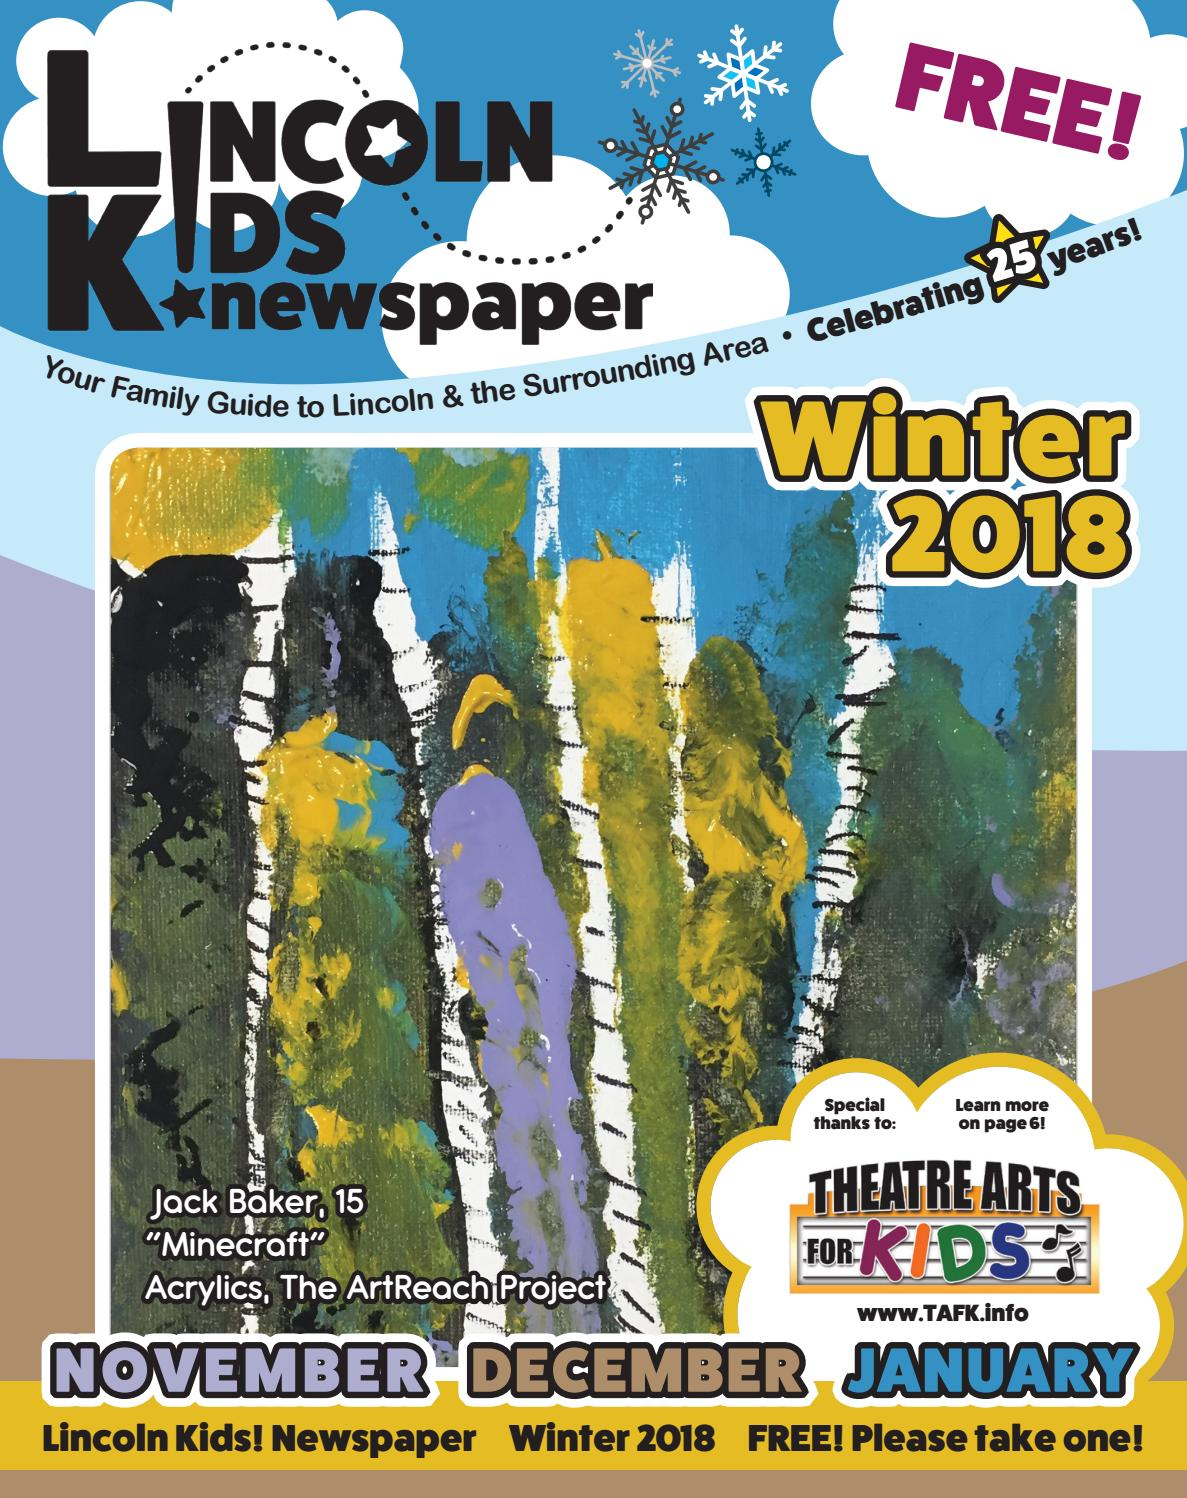 Lincoln Kids! Newspaper Winter 2018 Edition by Lincoln Kids.